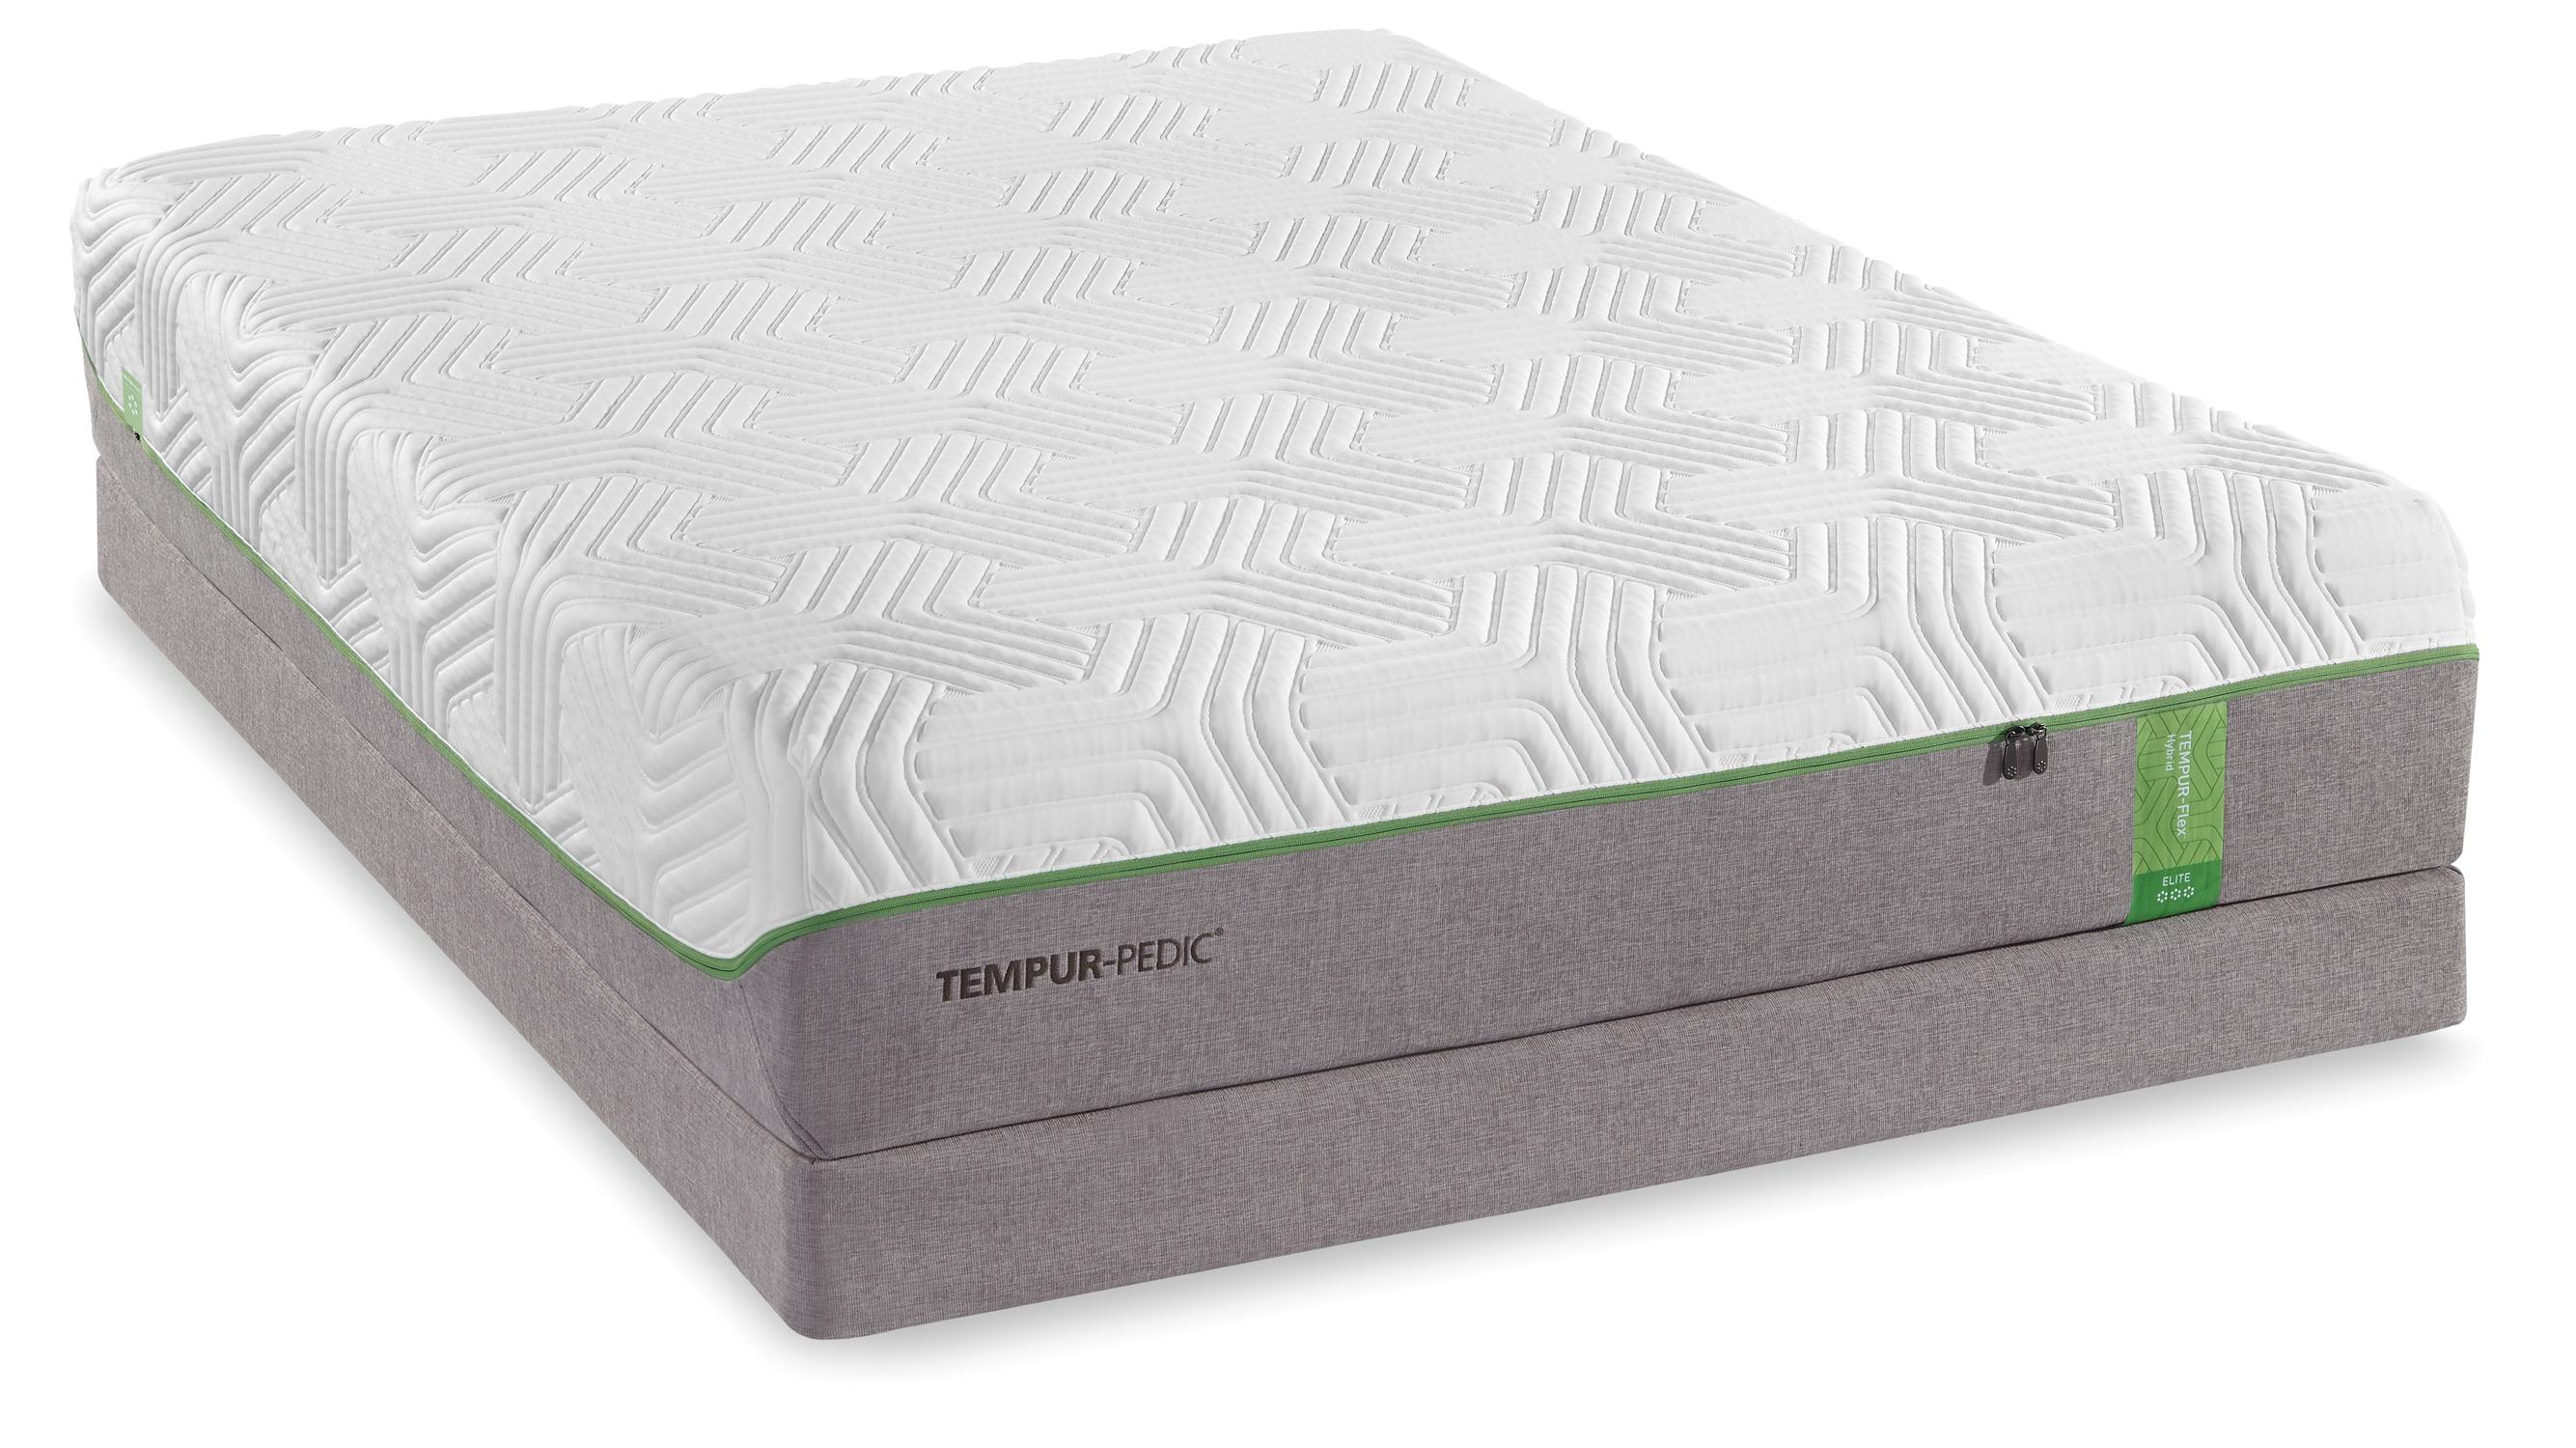 Tempur-Pedic® TEMPUR-Flex Elite Queen Medium Soft Plush Mattress Set - Item Number: 10117150+21510150